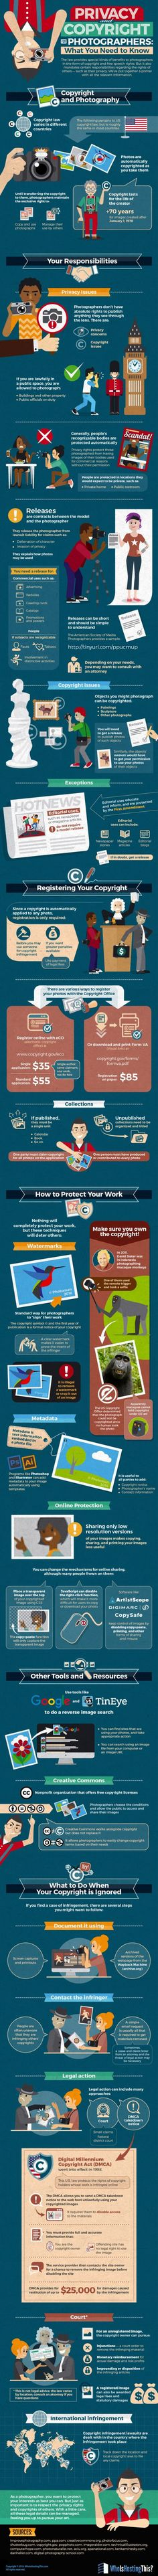 designmagic.pw diylogomaker.pw Photography & The Law: Privacy, Copyright & Your Rights